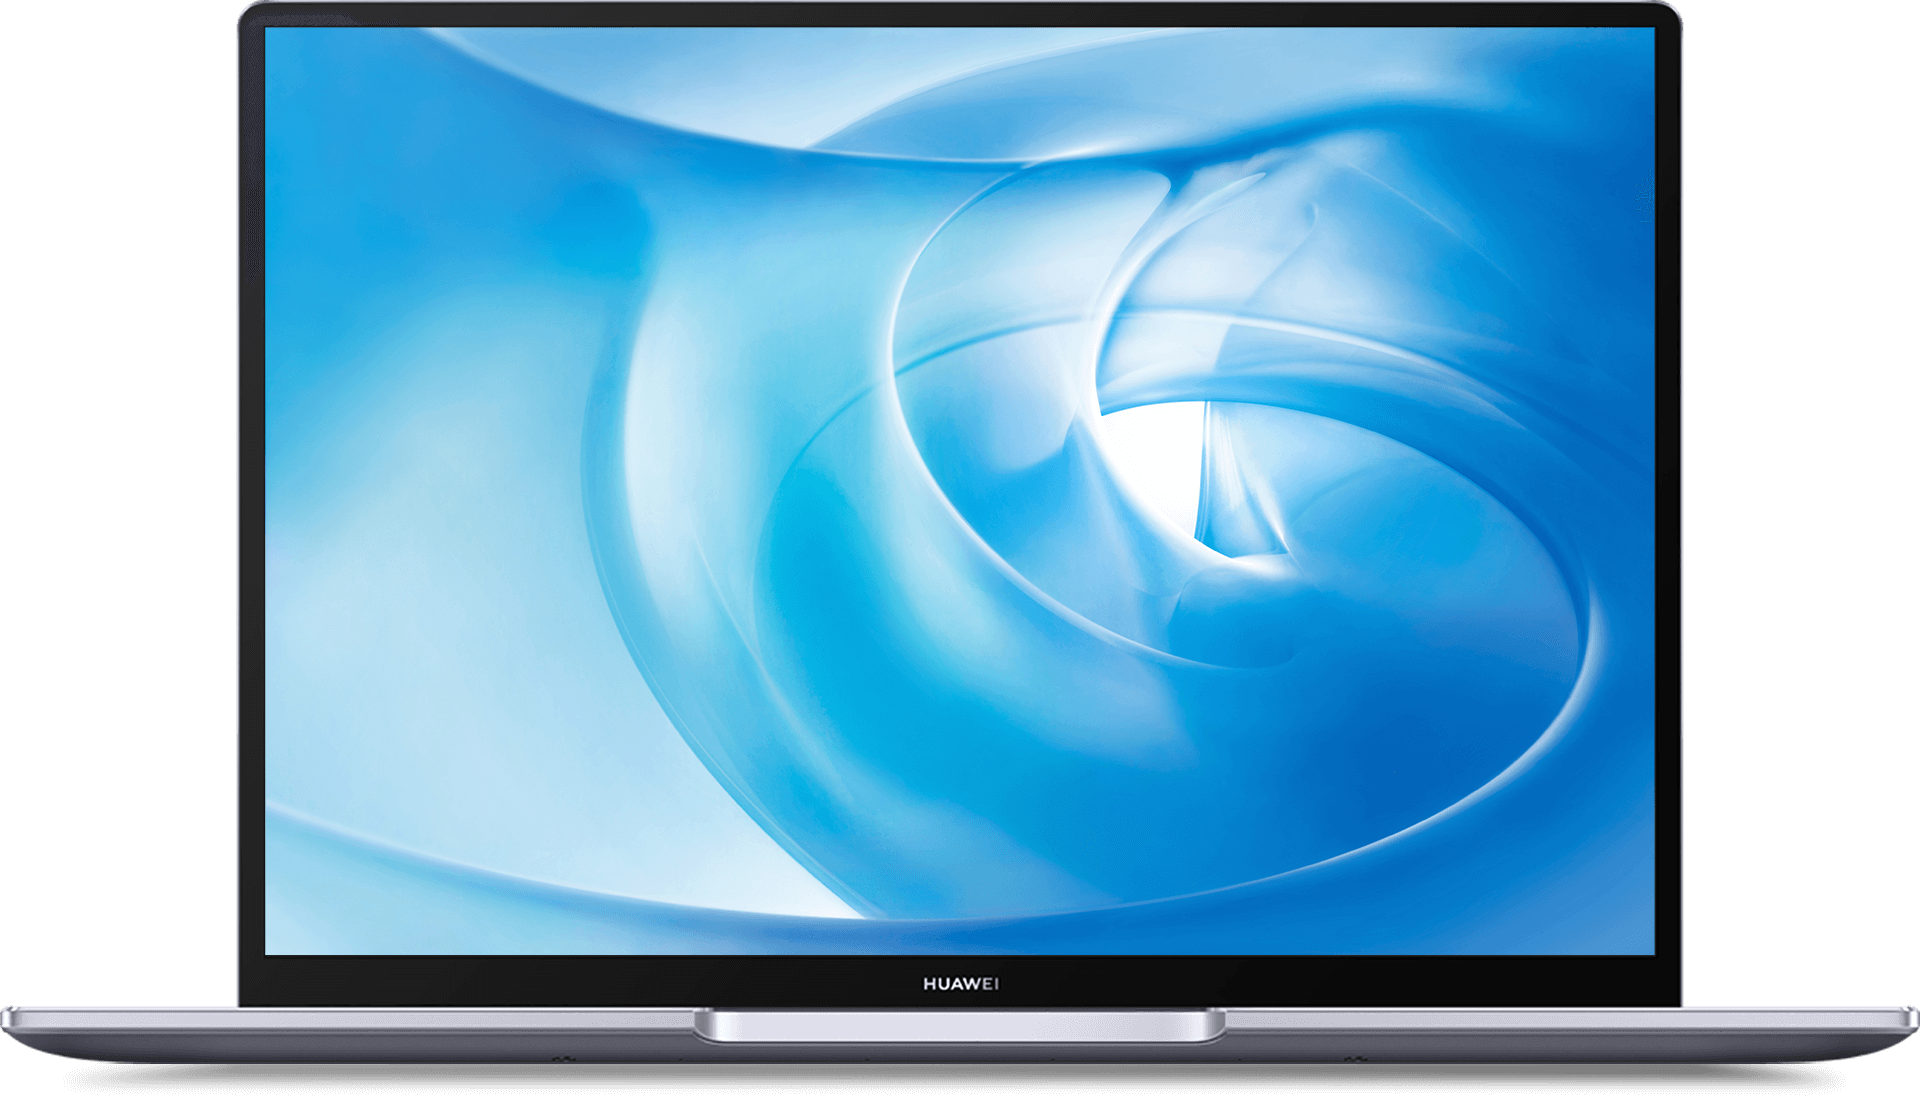 huawei matebook 14 fullview display